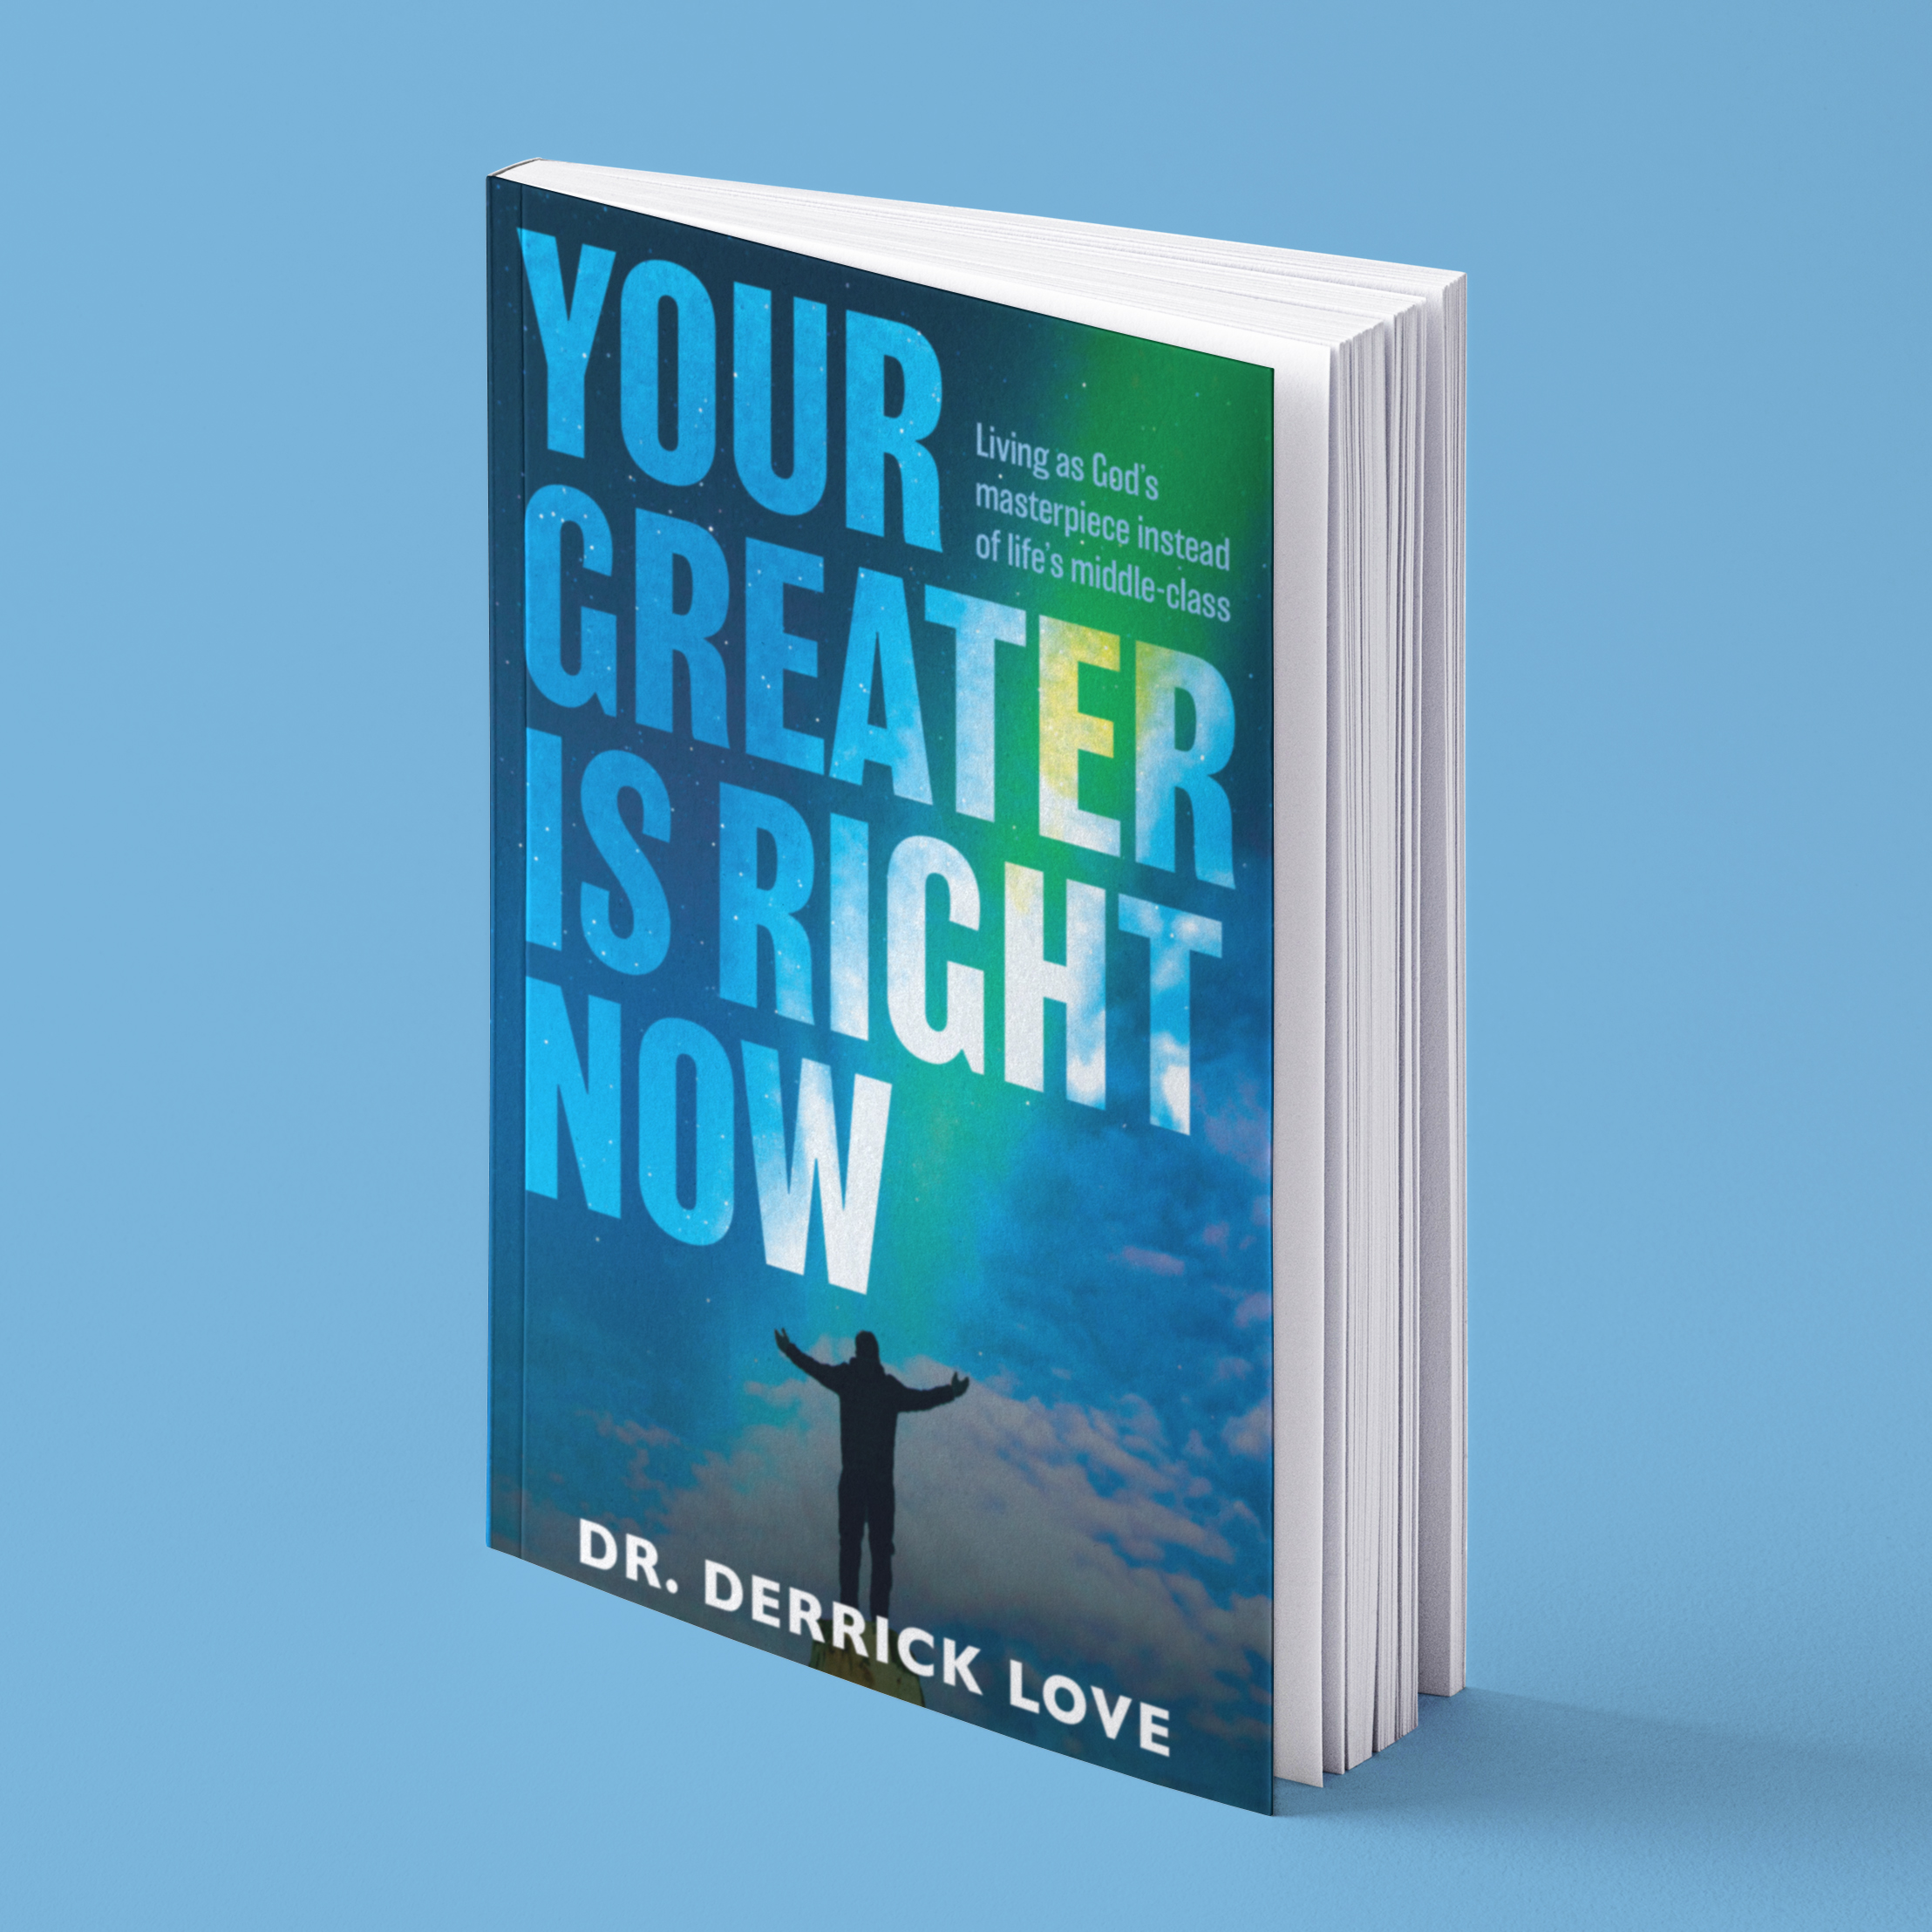 YOUR GREATER IS RIGHT NOW: Living as God's masterpiece instead of life's middle class